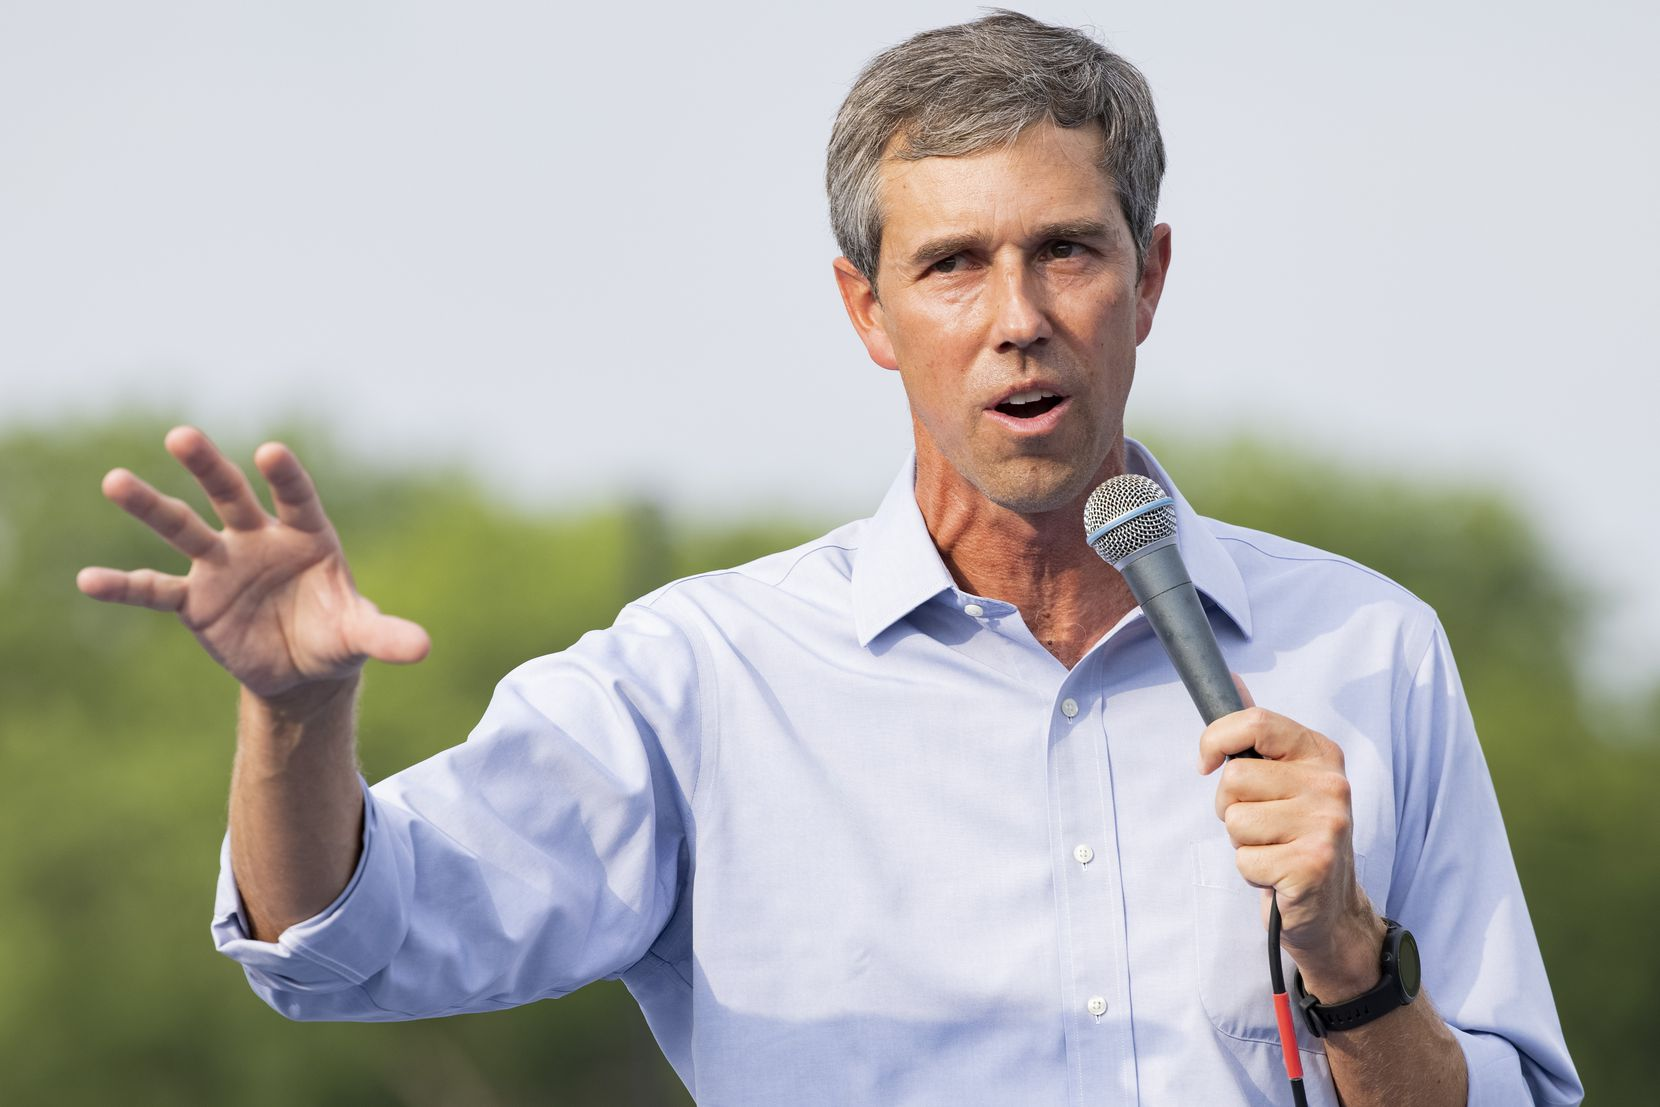 Former congressman Beto O'Rourke speaks during his For the People, The Texas Drive for Democracy event on Tuesday, June 8, 2021, at Paul Quinn College in Dallas. (Juan Figueroa/The Dallas Morning News)